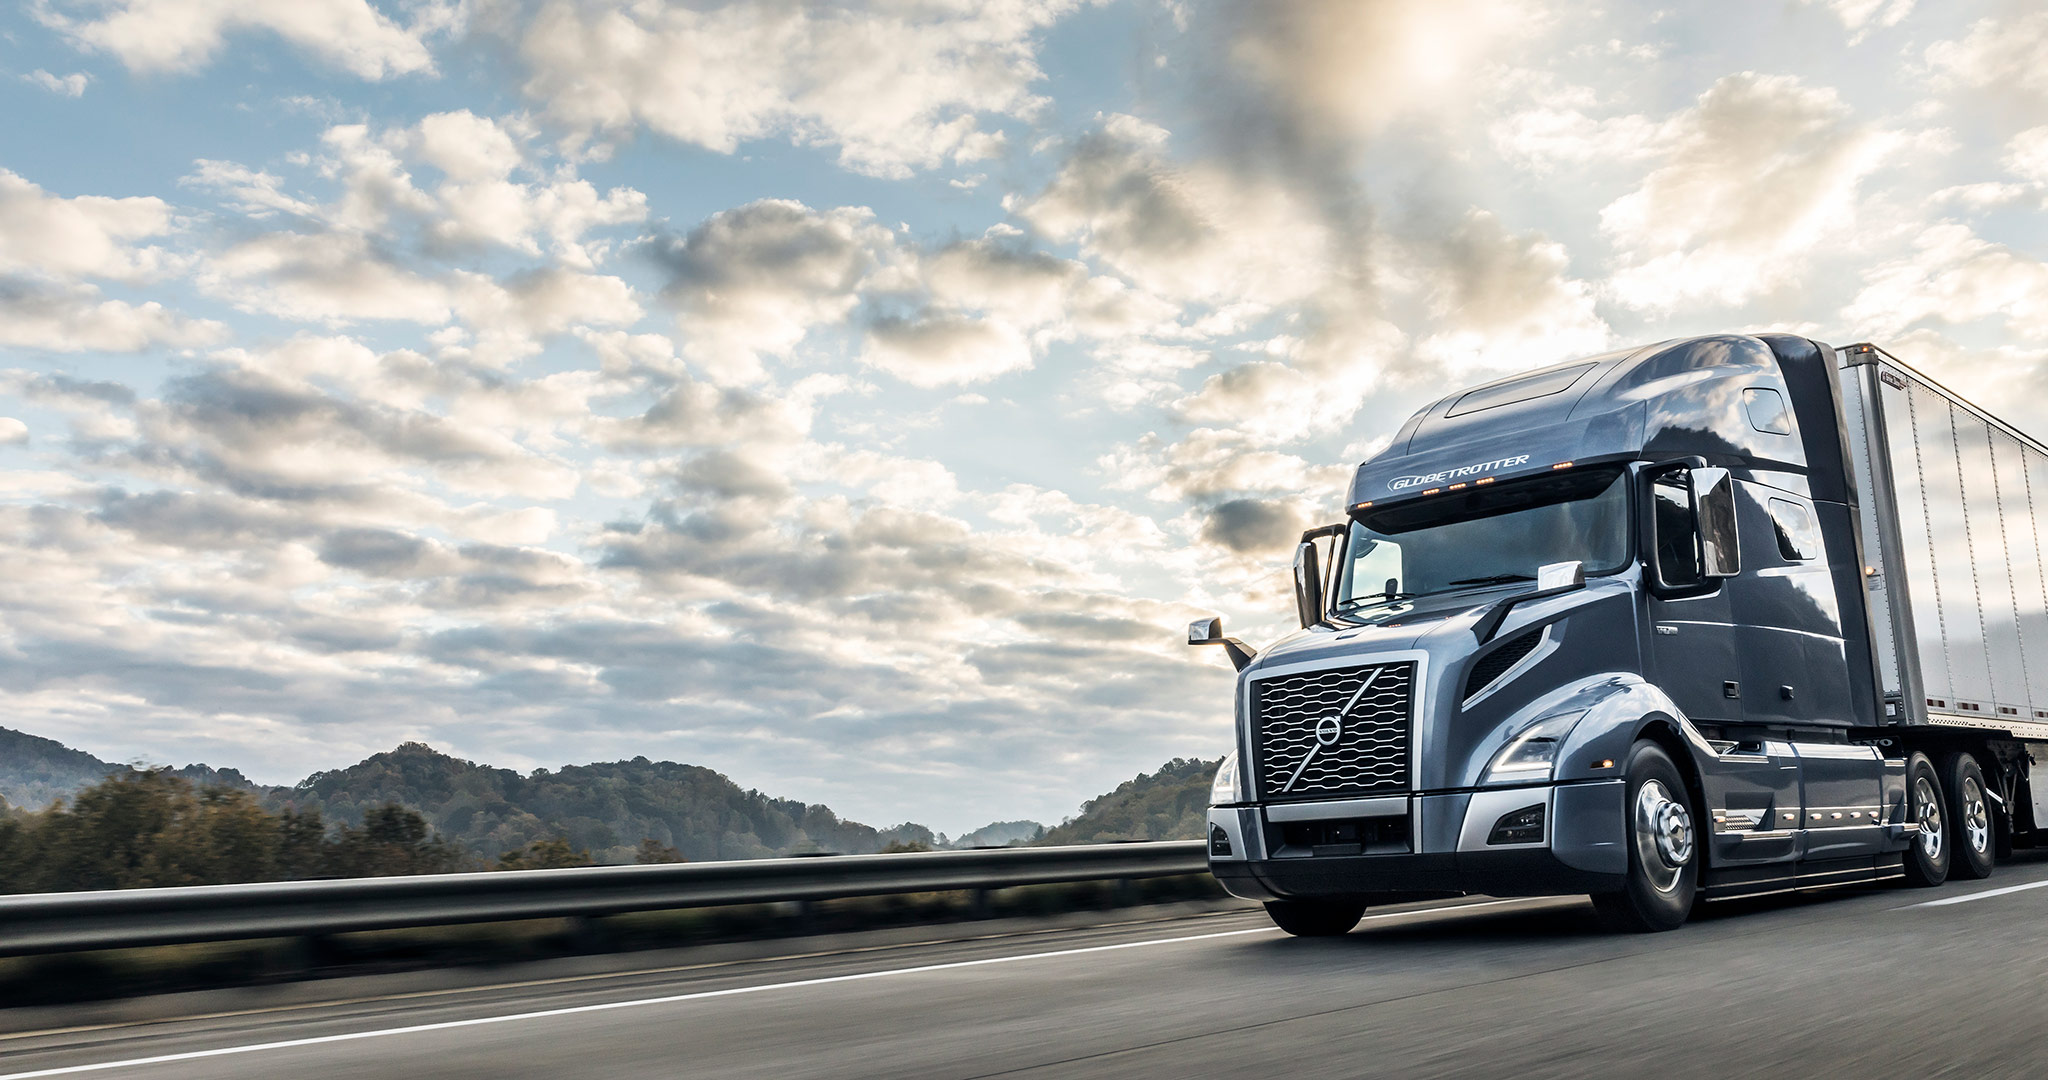 truck vnl pictures transport updated pere wi from s for u index of dsc sharp de htforum paper volvo out